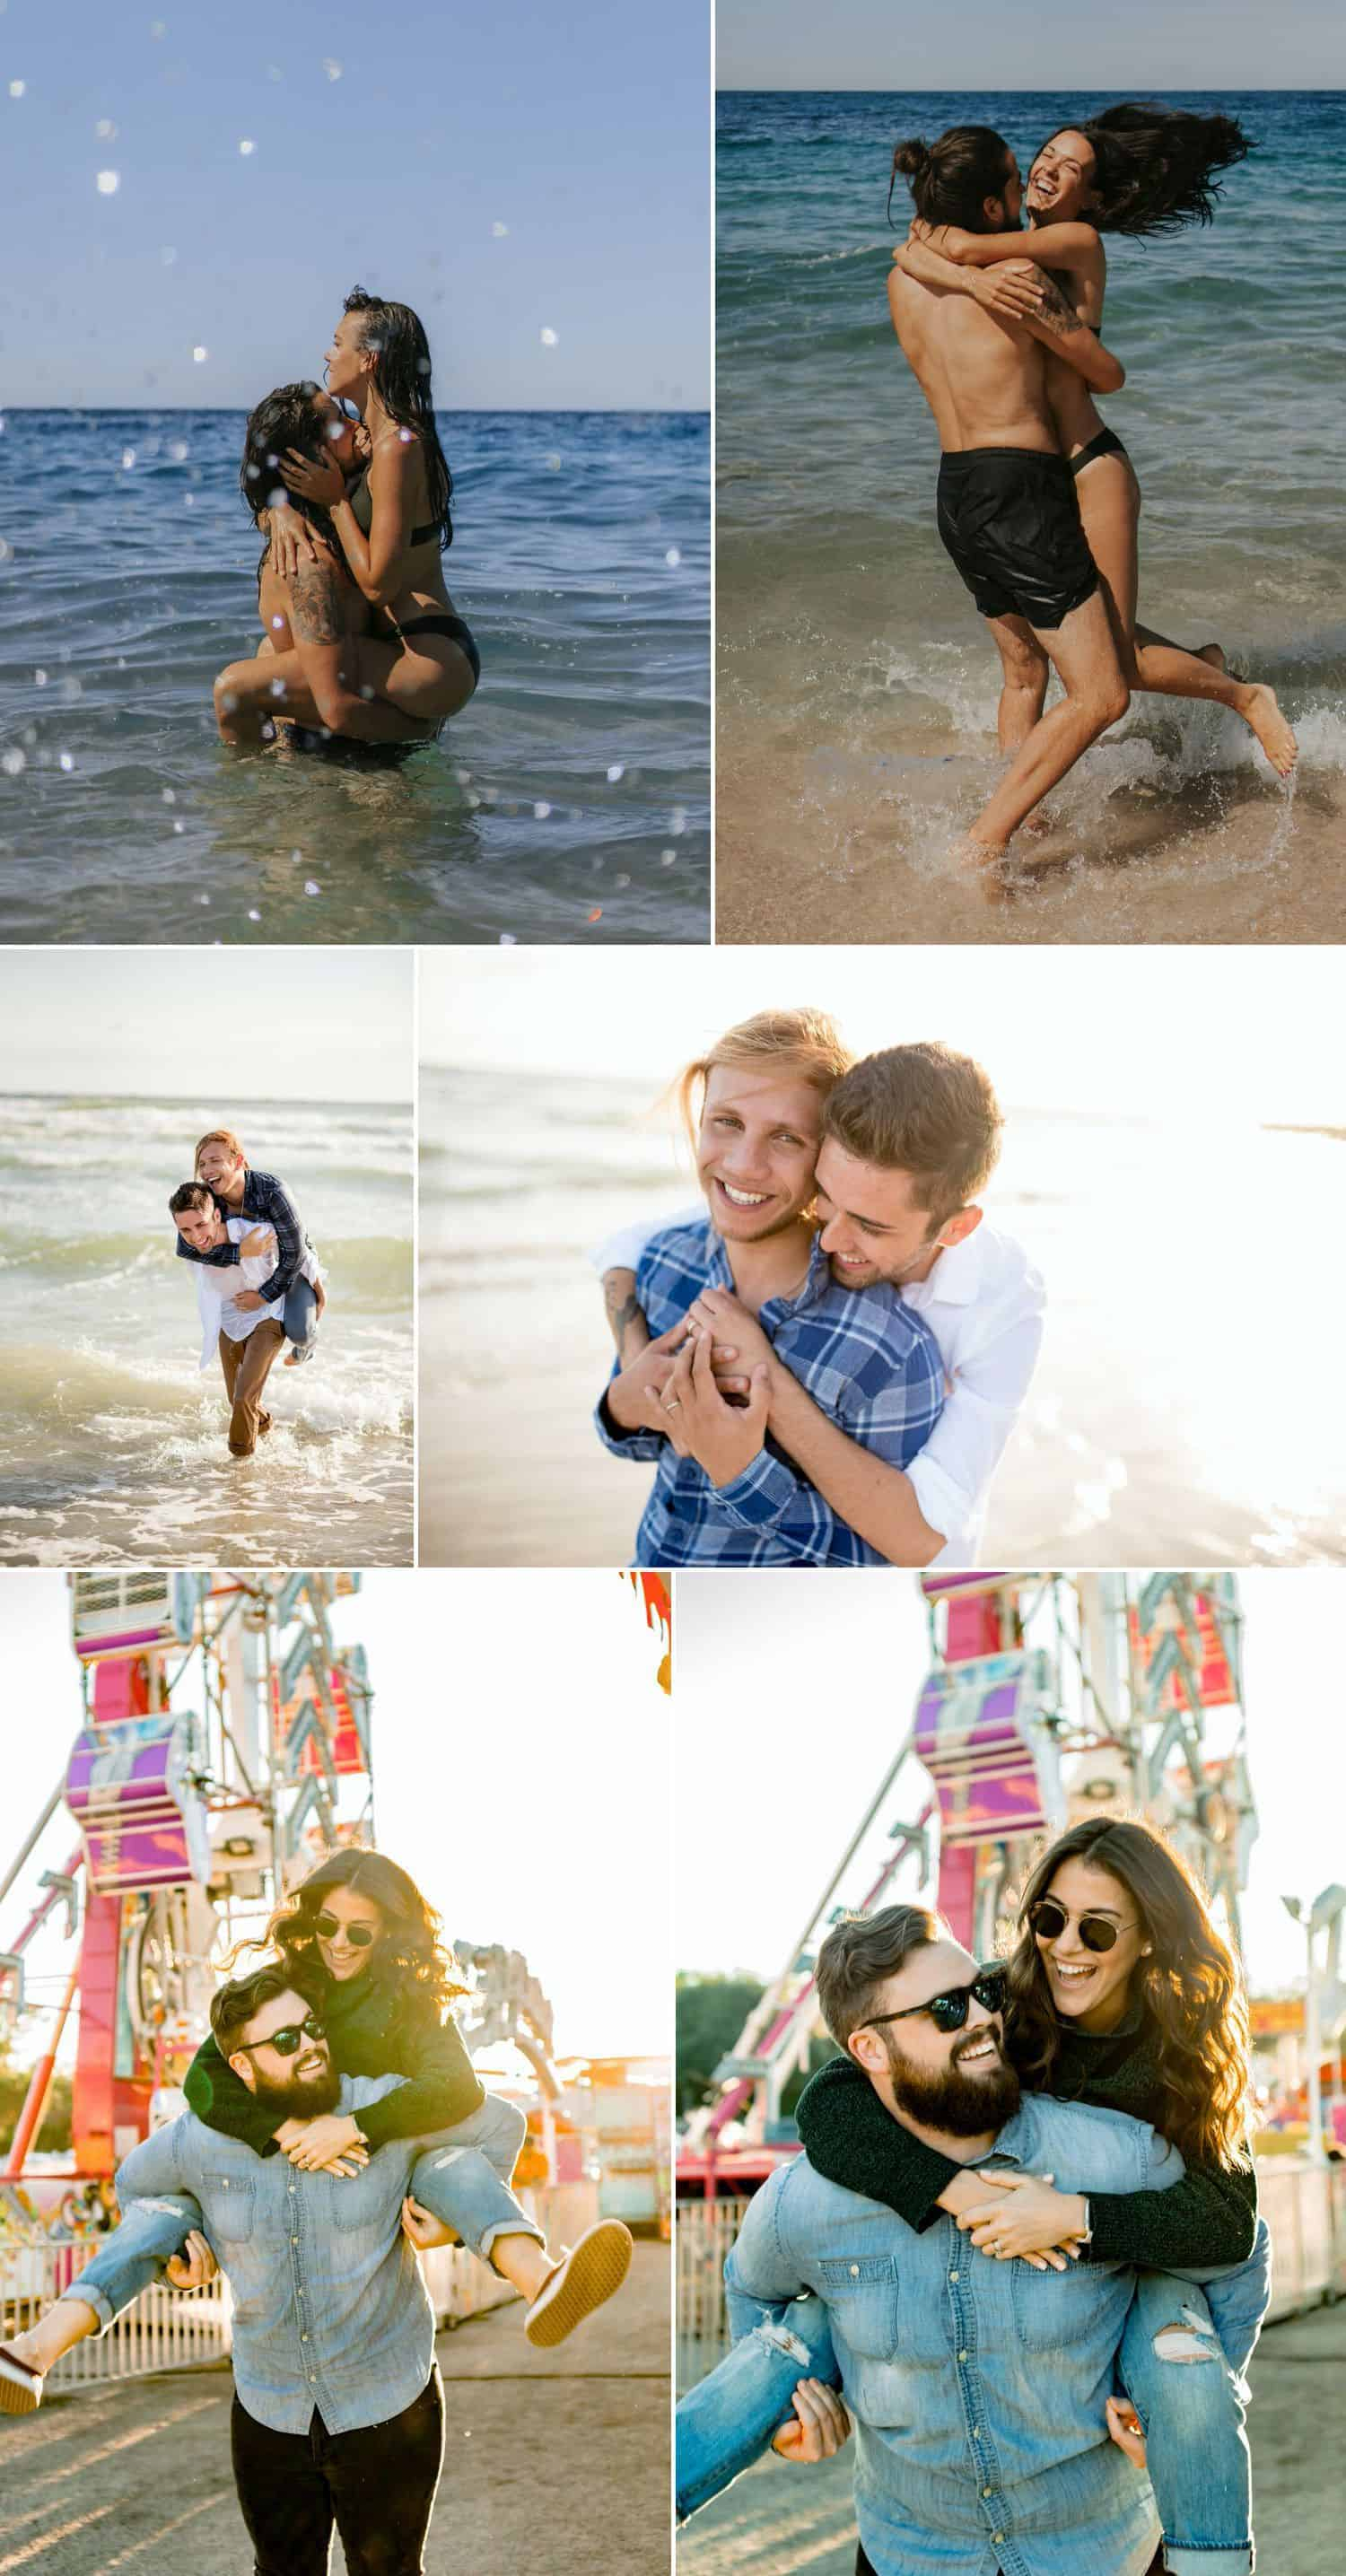 Engaged couples give each other piggy back rides and carry each other through the waves at the beach